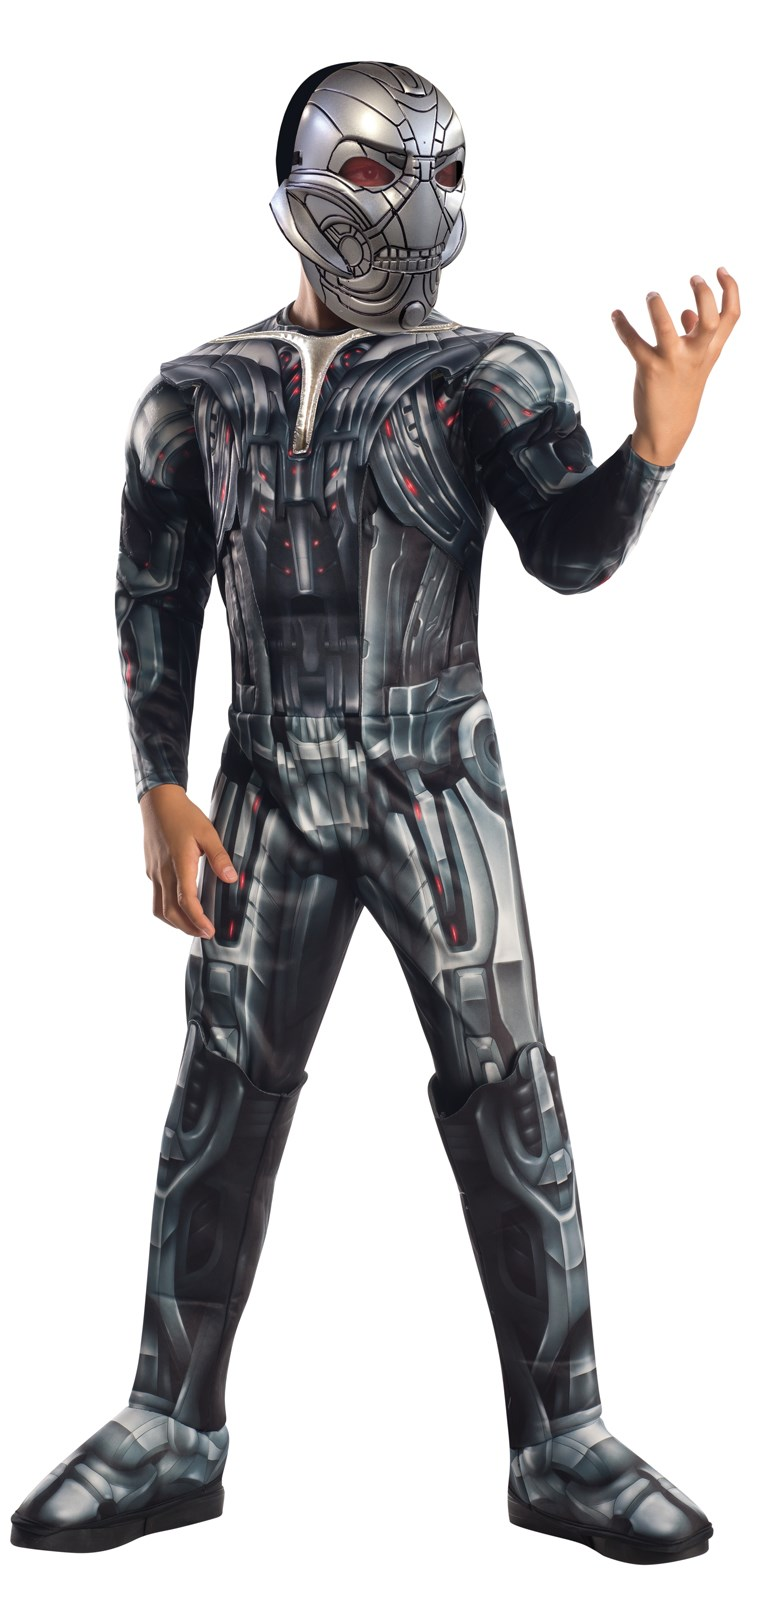 Avengers 2 - Age of Ultron: Deluxe Ultron Costume For Kids Small (4-6)